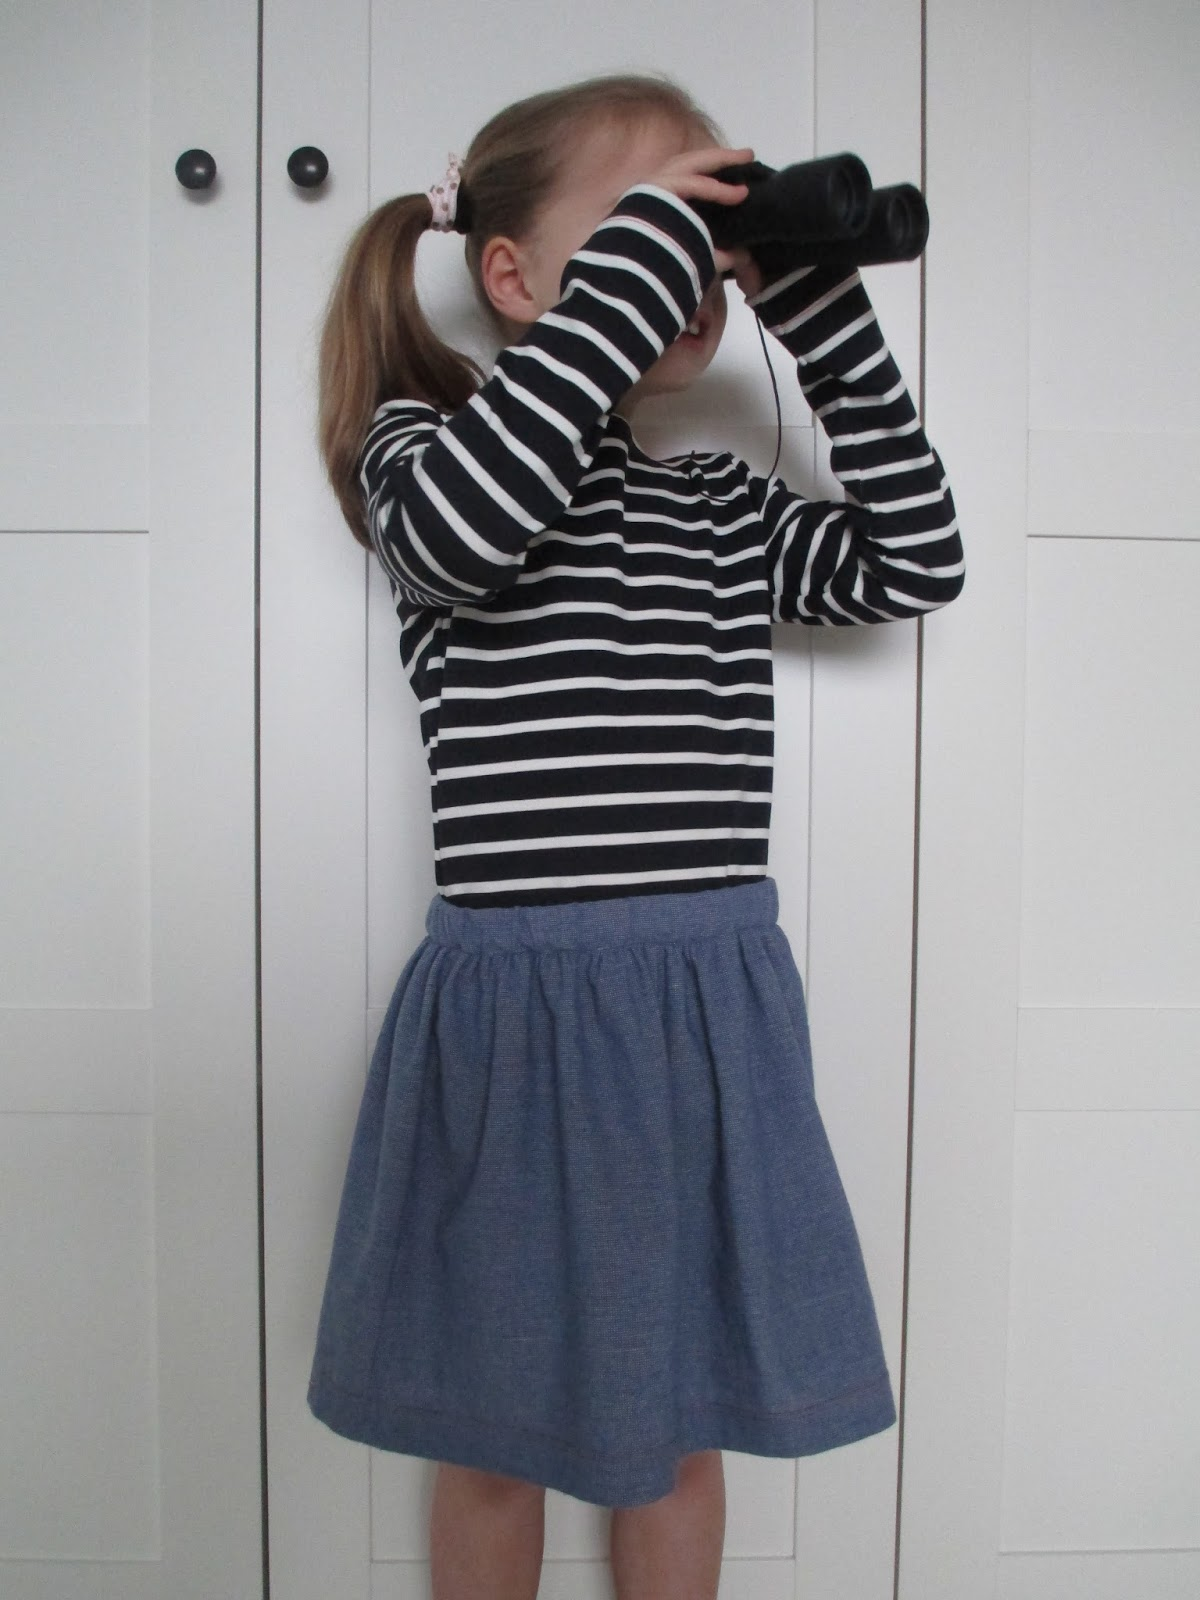 BY IK  Nieuwe outfits